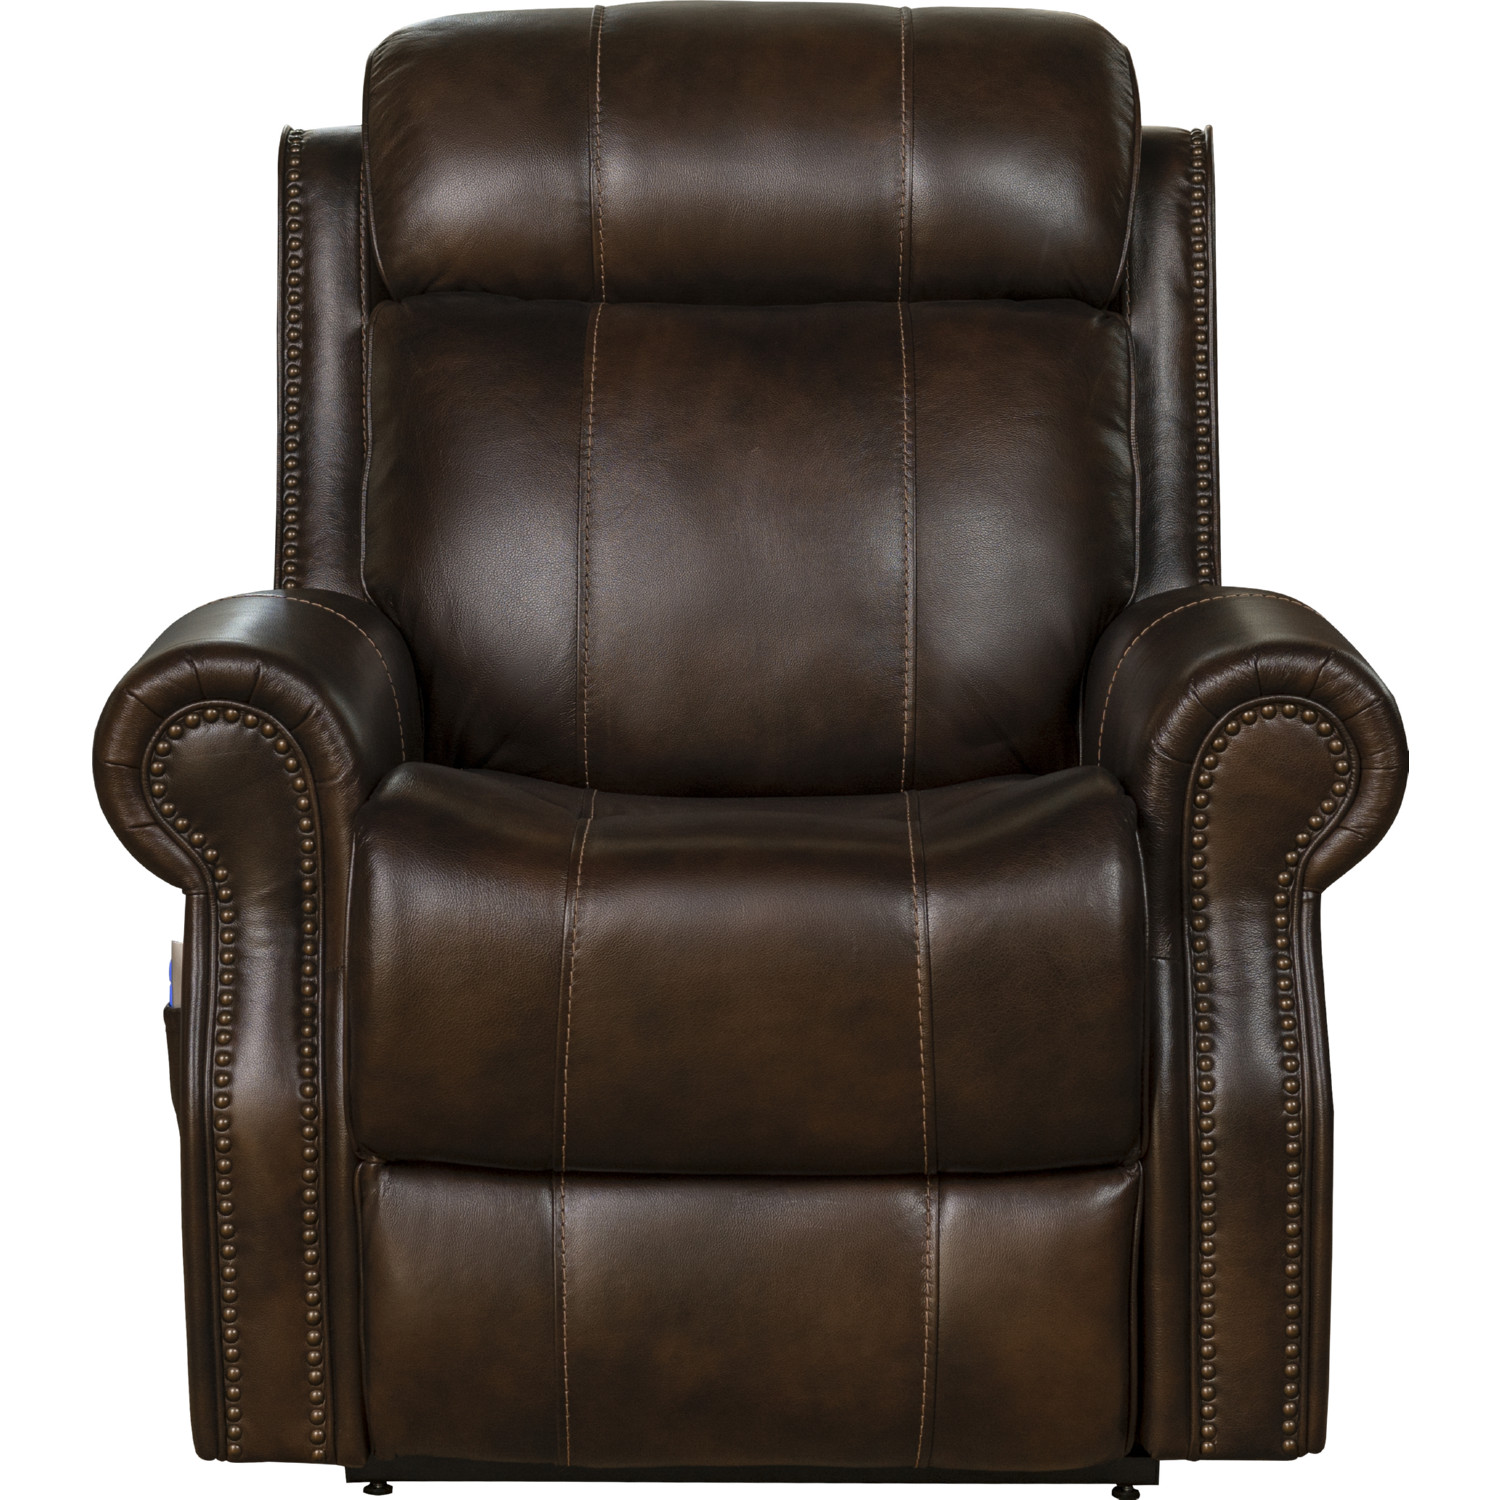 Cool Langston Lift Chair Recliner W Power Head Rest In Tonya Brown Leather By Barcalounger Unemploymentrelief Wooden Chair Designs For Living Room Unemploymentrelieforg